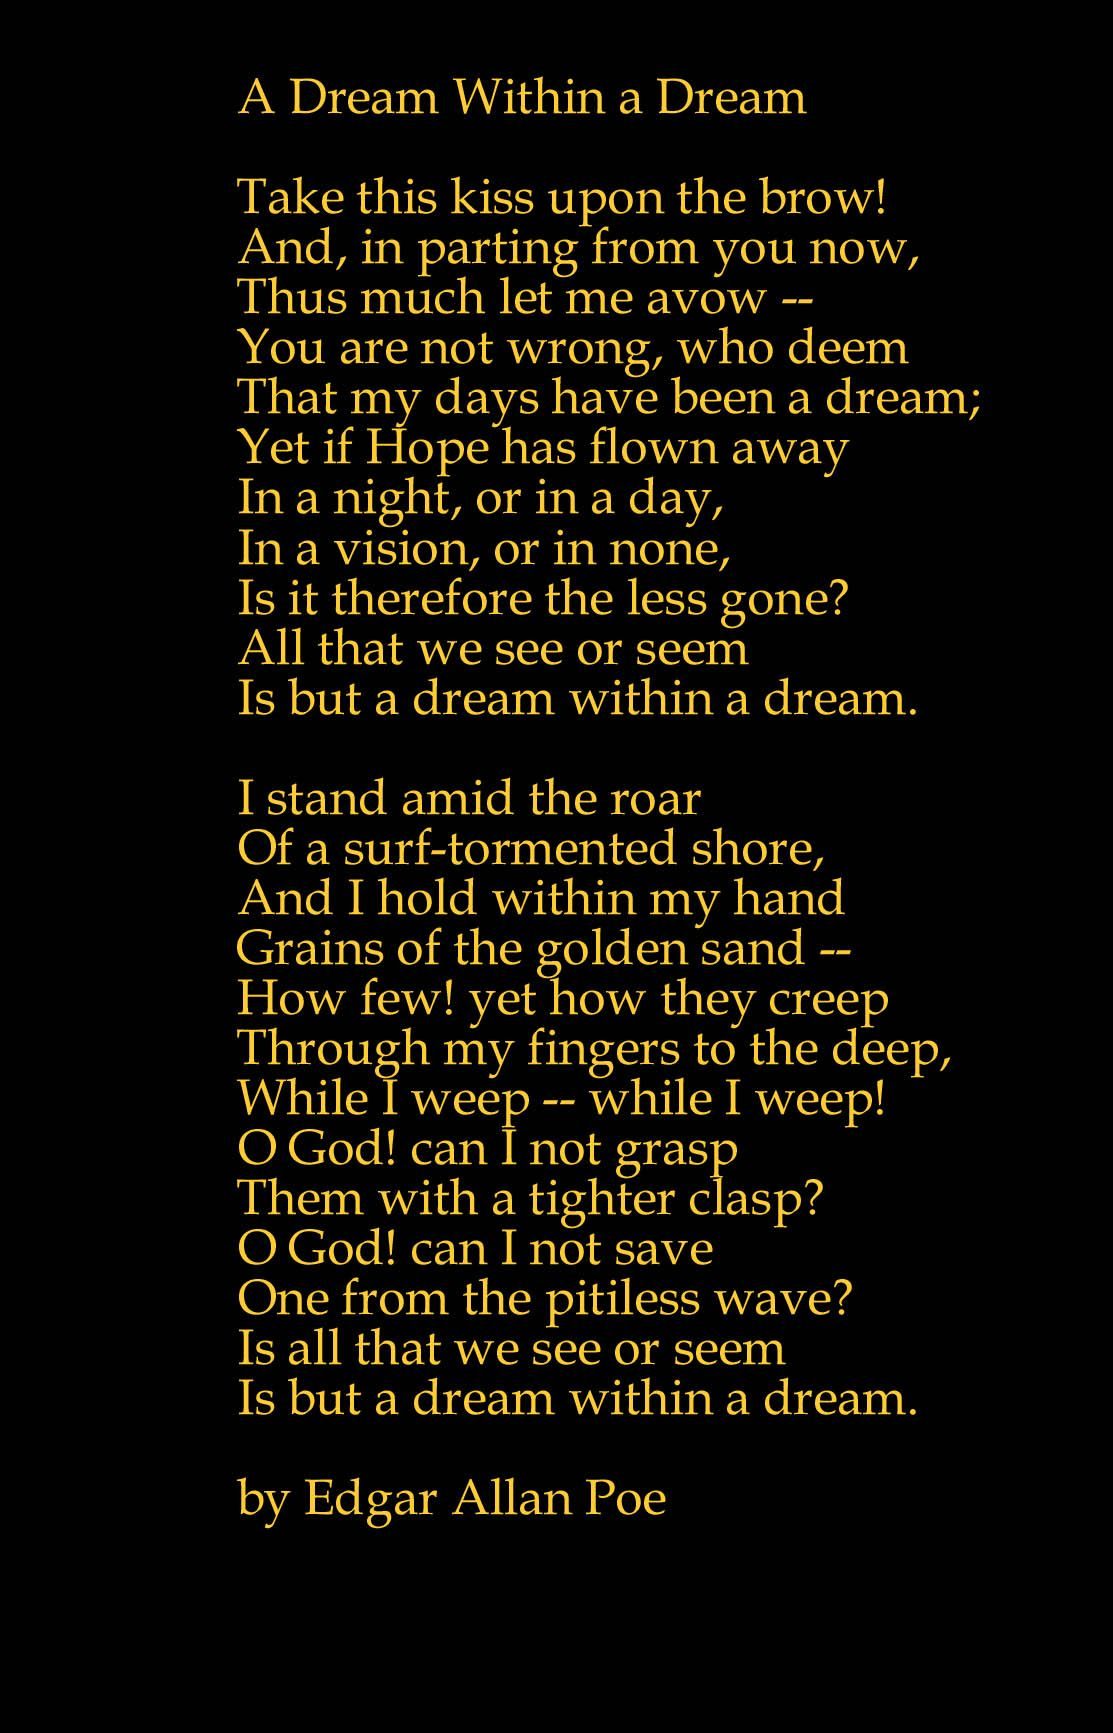 A Dream Within Edgar Allen Poe One Of My Favorite Poem All Eternity Quote Allan The Raven Poetry By